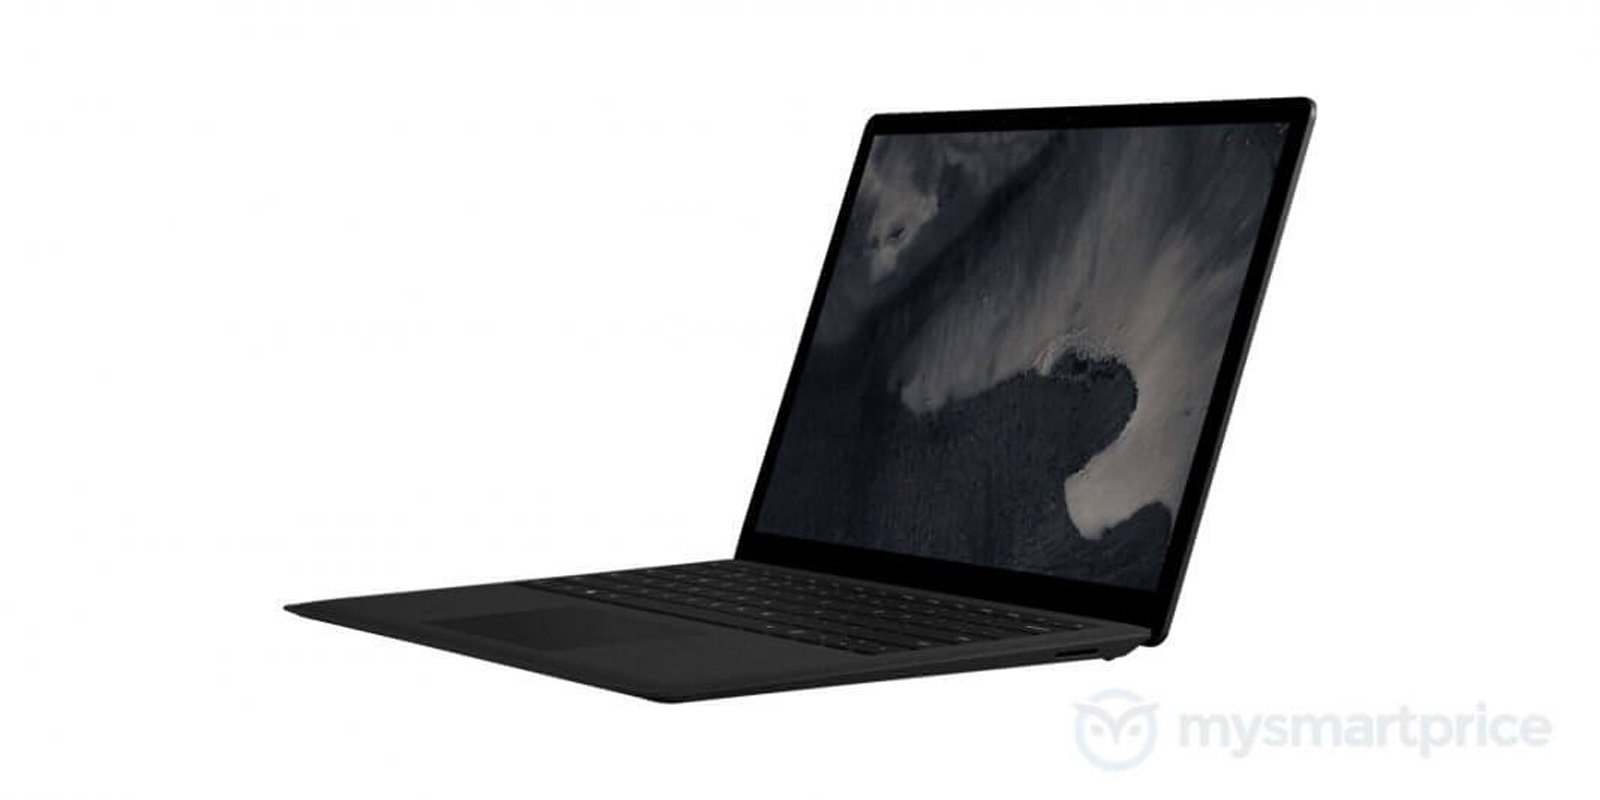 Surface Pro and Surface Laptop may only receive simple spec bumps